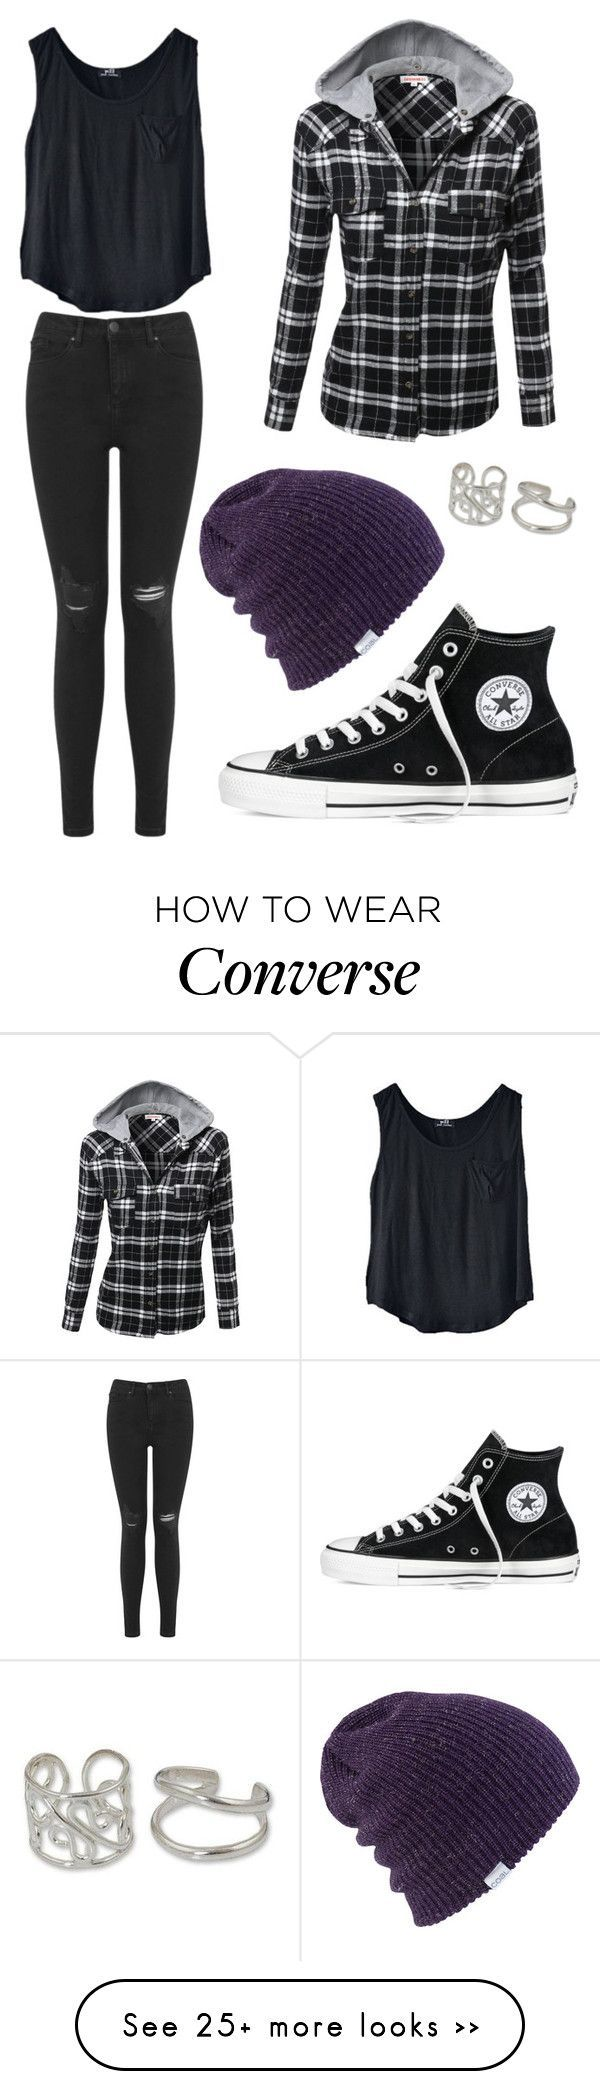 """Untitled #2223"" by picky-picky on Polyvore featuring Miss Selfridge, Coal, Converse and NOVICA"